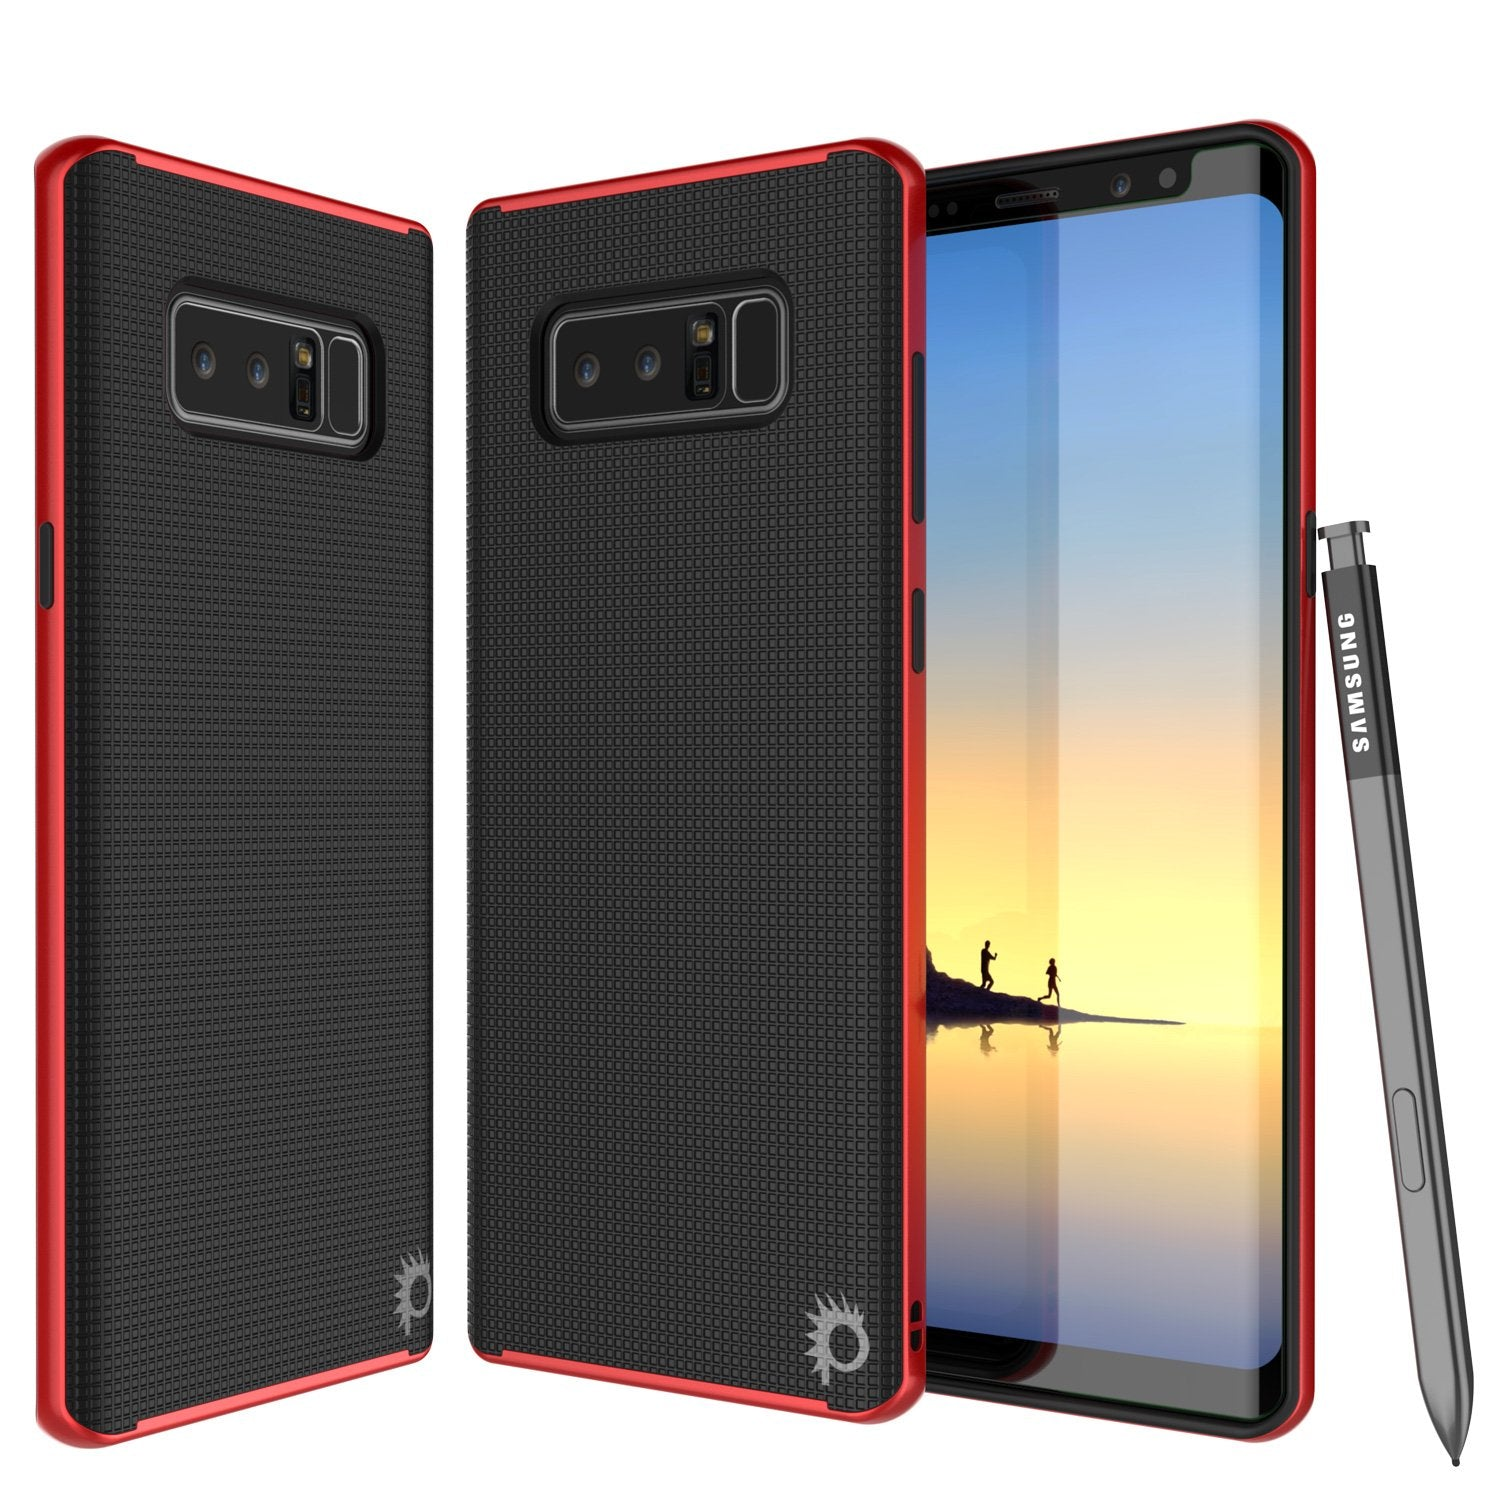 Galaxy Note 8 Case, PunkCase [Stealth Series] Hybrid 3-Piece Shockproof Dual Layer Cover [Non-Slip] [Soft TPU + PC Bumper] with PUNKSHIELD Screen Protector for Samsung Note 8 [Red]